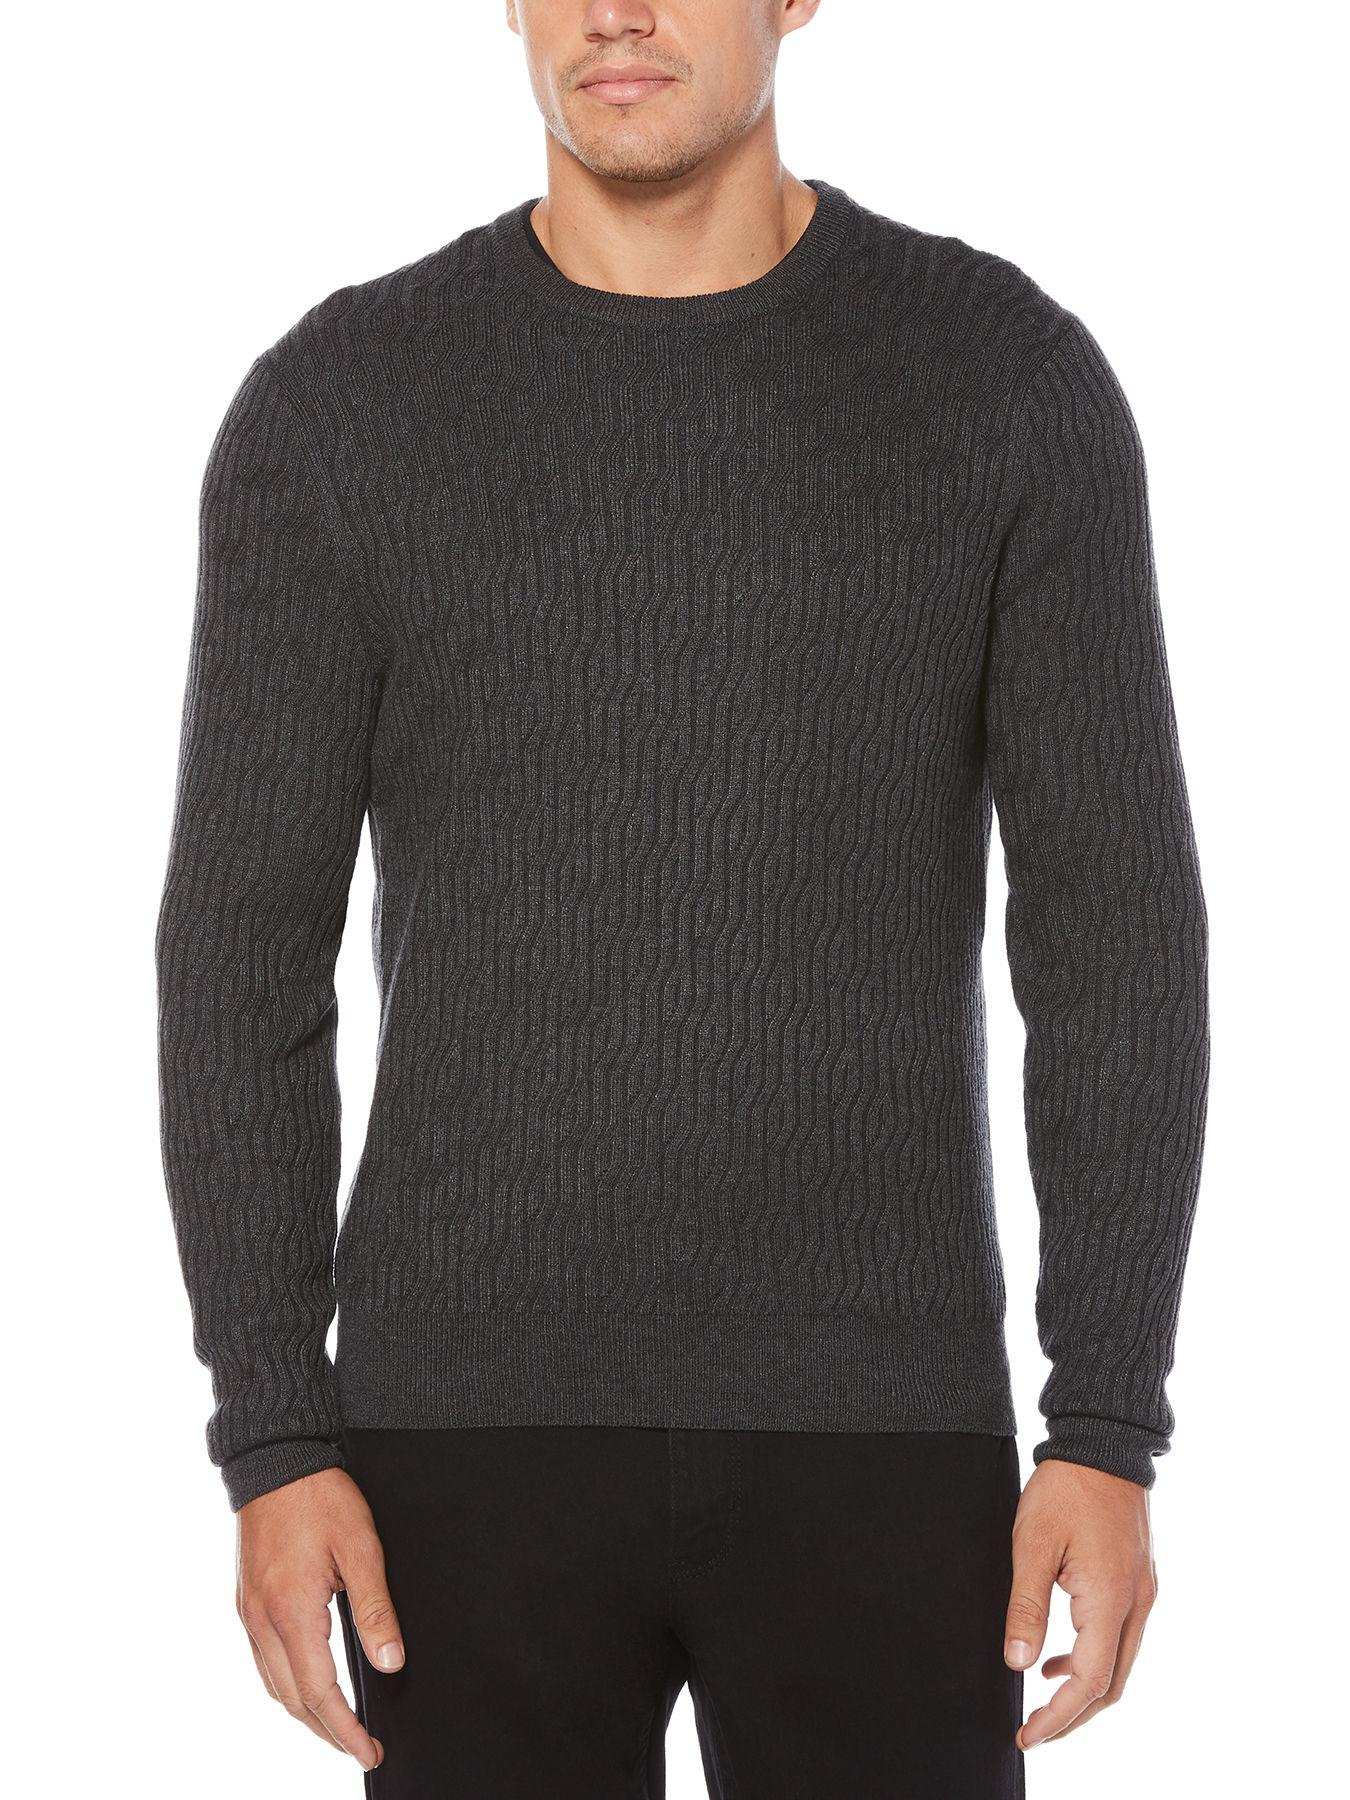 24f8ccce0 Lyst - Perry Ellis Solid Cable Sweater in Gray for Men - Save 20%